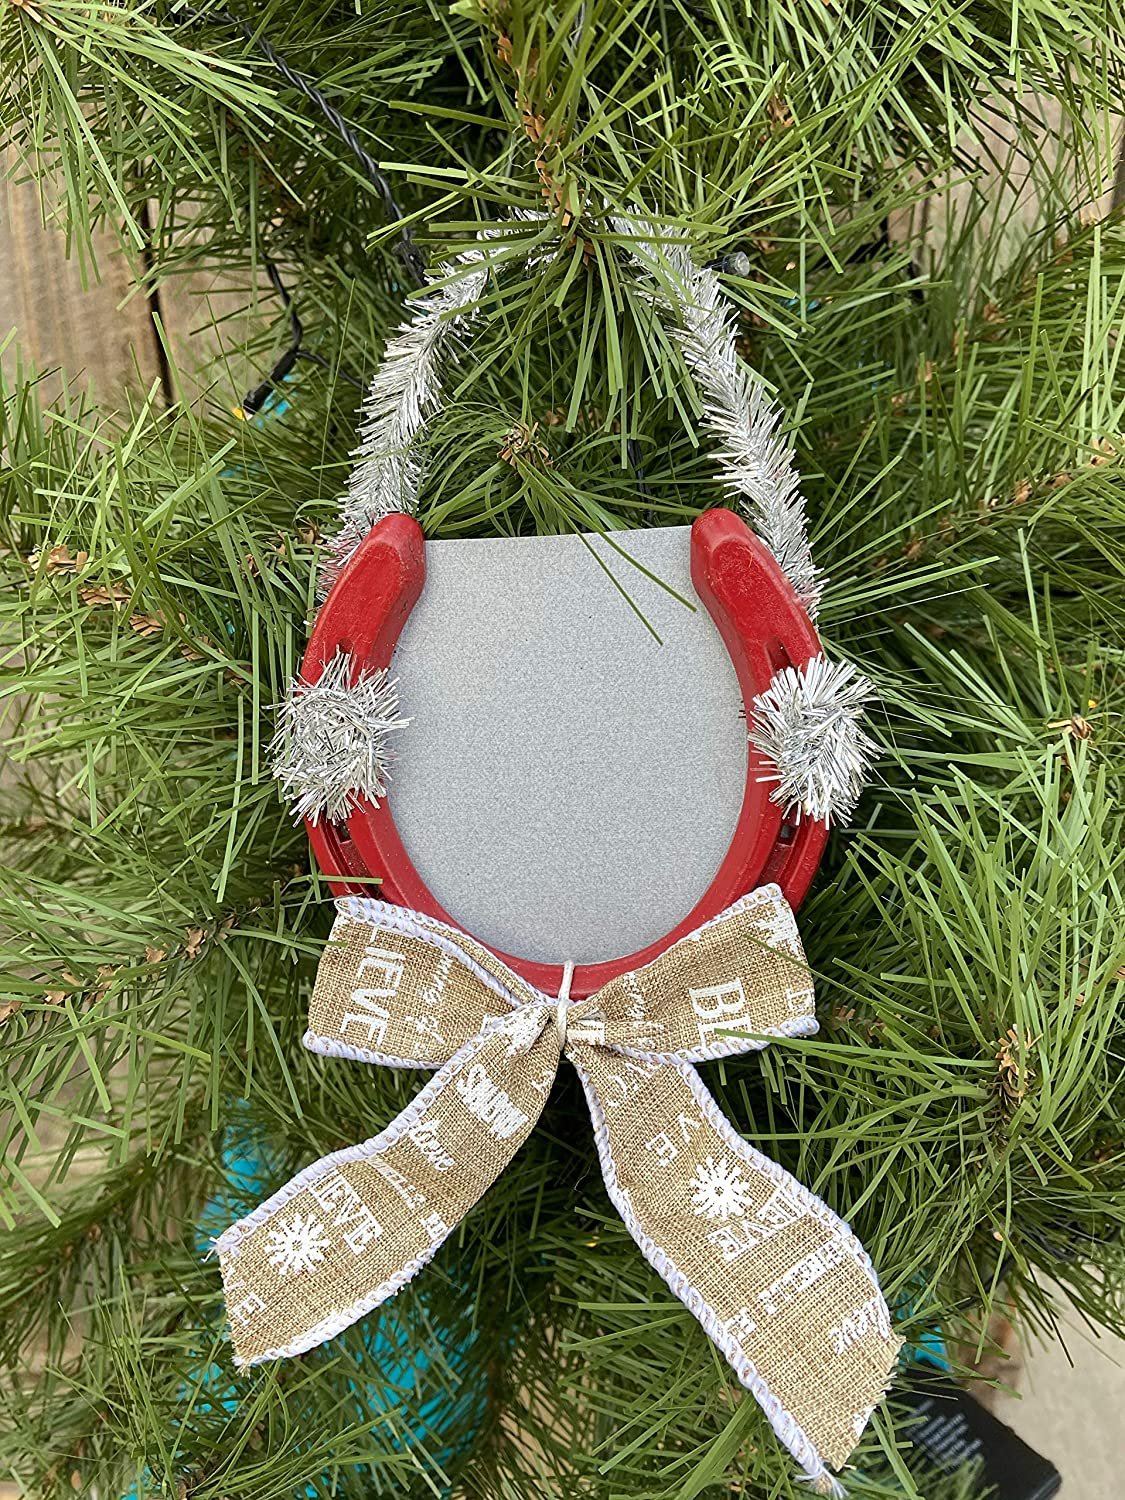 New Year good luck horse shoe ornament with 2019 year charm stoneware high fire \u03ba\u03b5\u03c1\u03b1\u03bc\u03b9\u03ba\u03cc \u03c0\u03ad\u03c4\u03b1\u03bb\u03bf \u03b3\u03bf\u03cd\u03c1\u03b9 2019 Horse shoe ceramic ornament